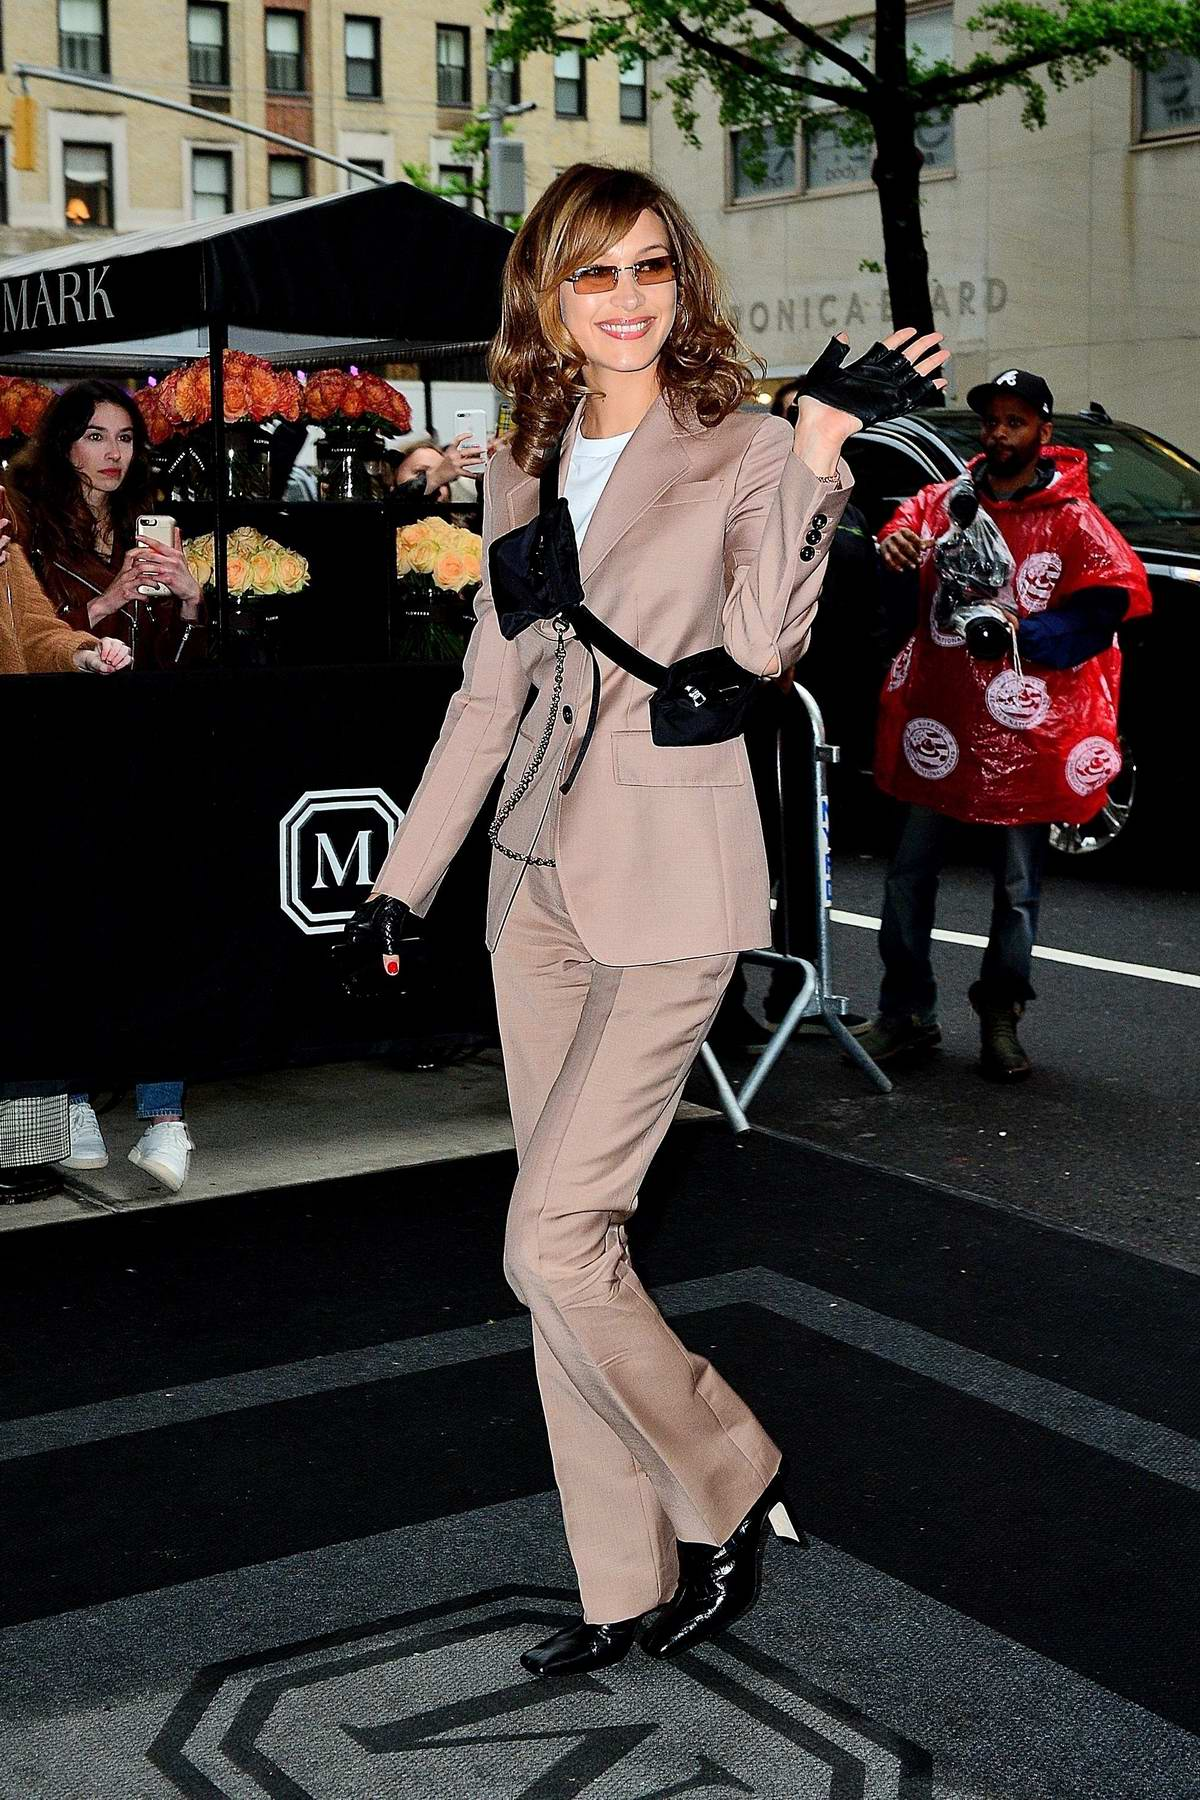 Bella Hadid looks fantastic in a dusty pink suit as she greet her fans while arriving at The Mark in New York City